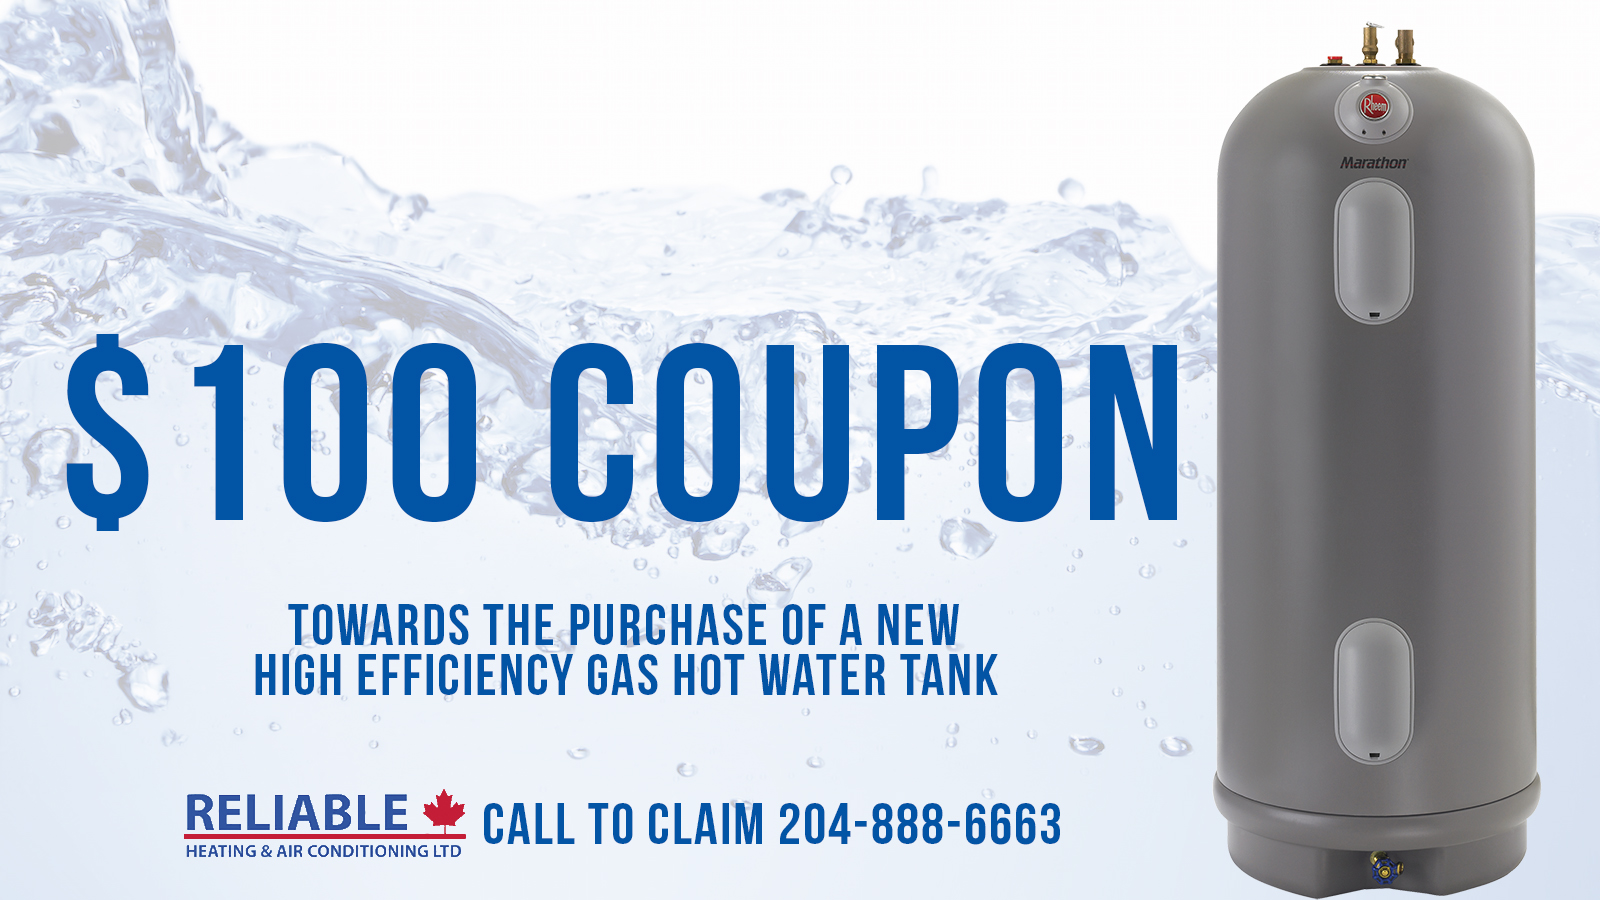 Hot Water Tank Promotions